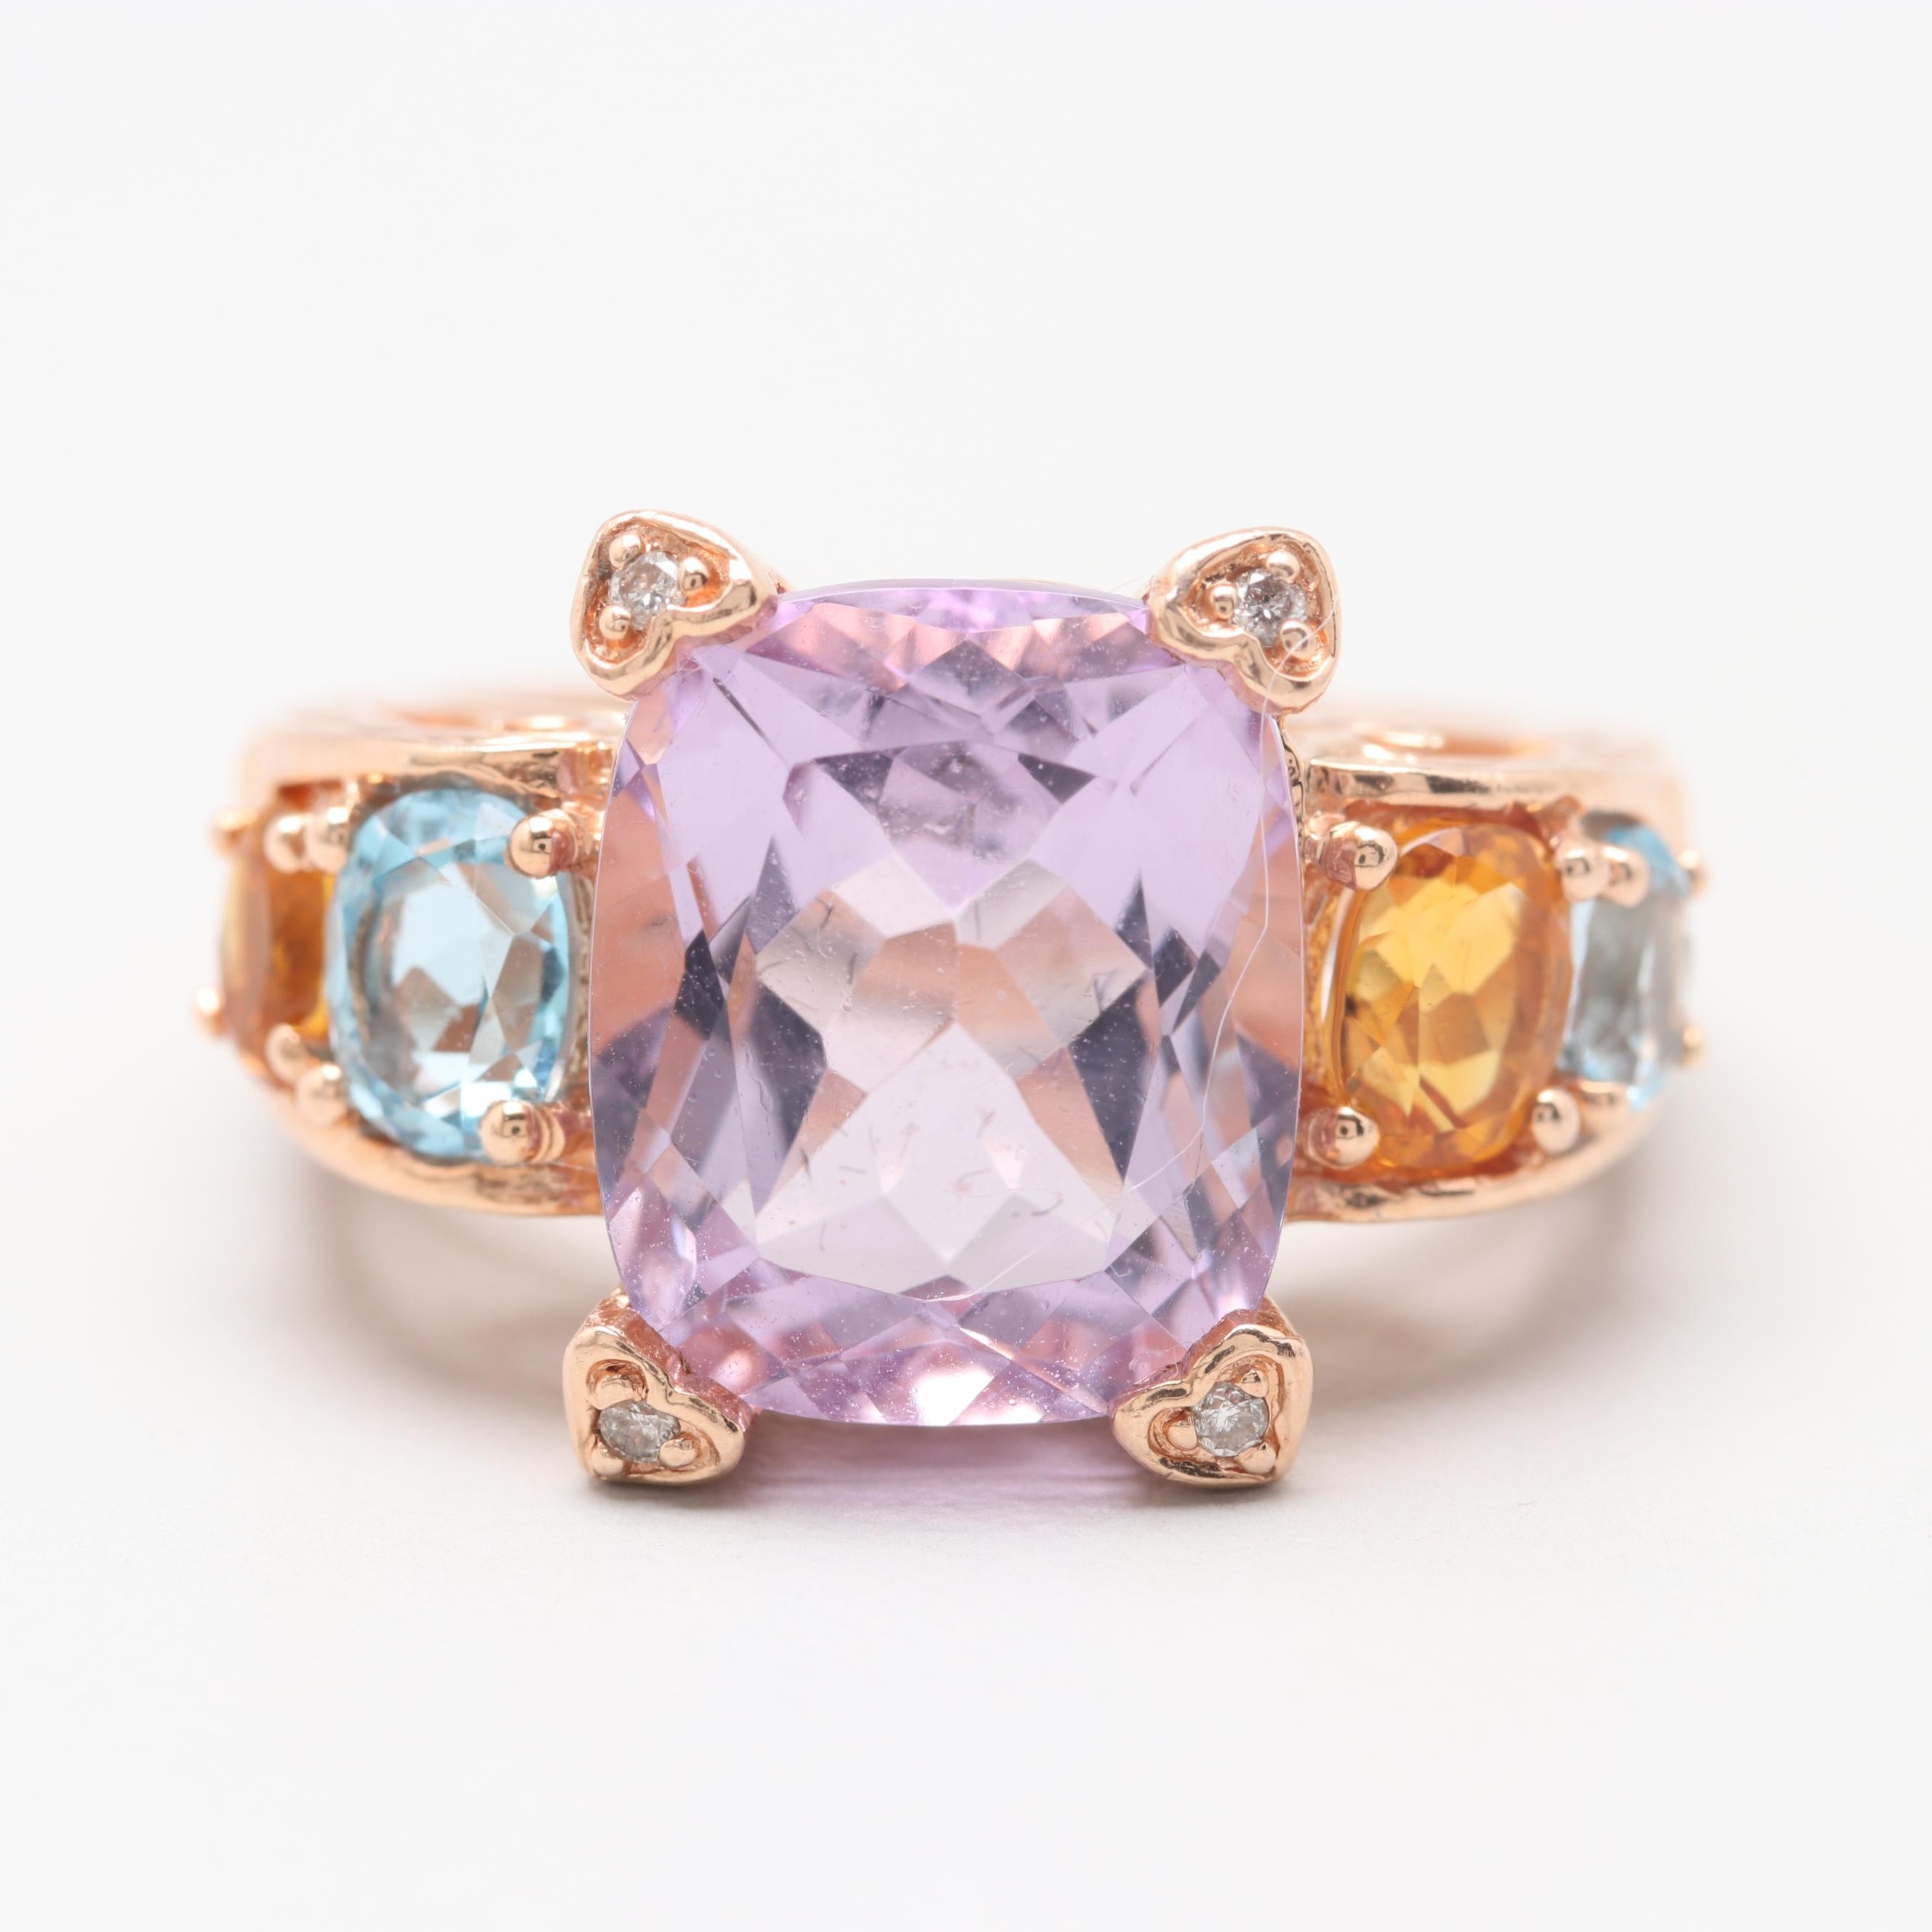 14K Rose Gold Amethyst, Citrine, Topaz, and Diamond Ring